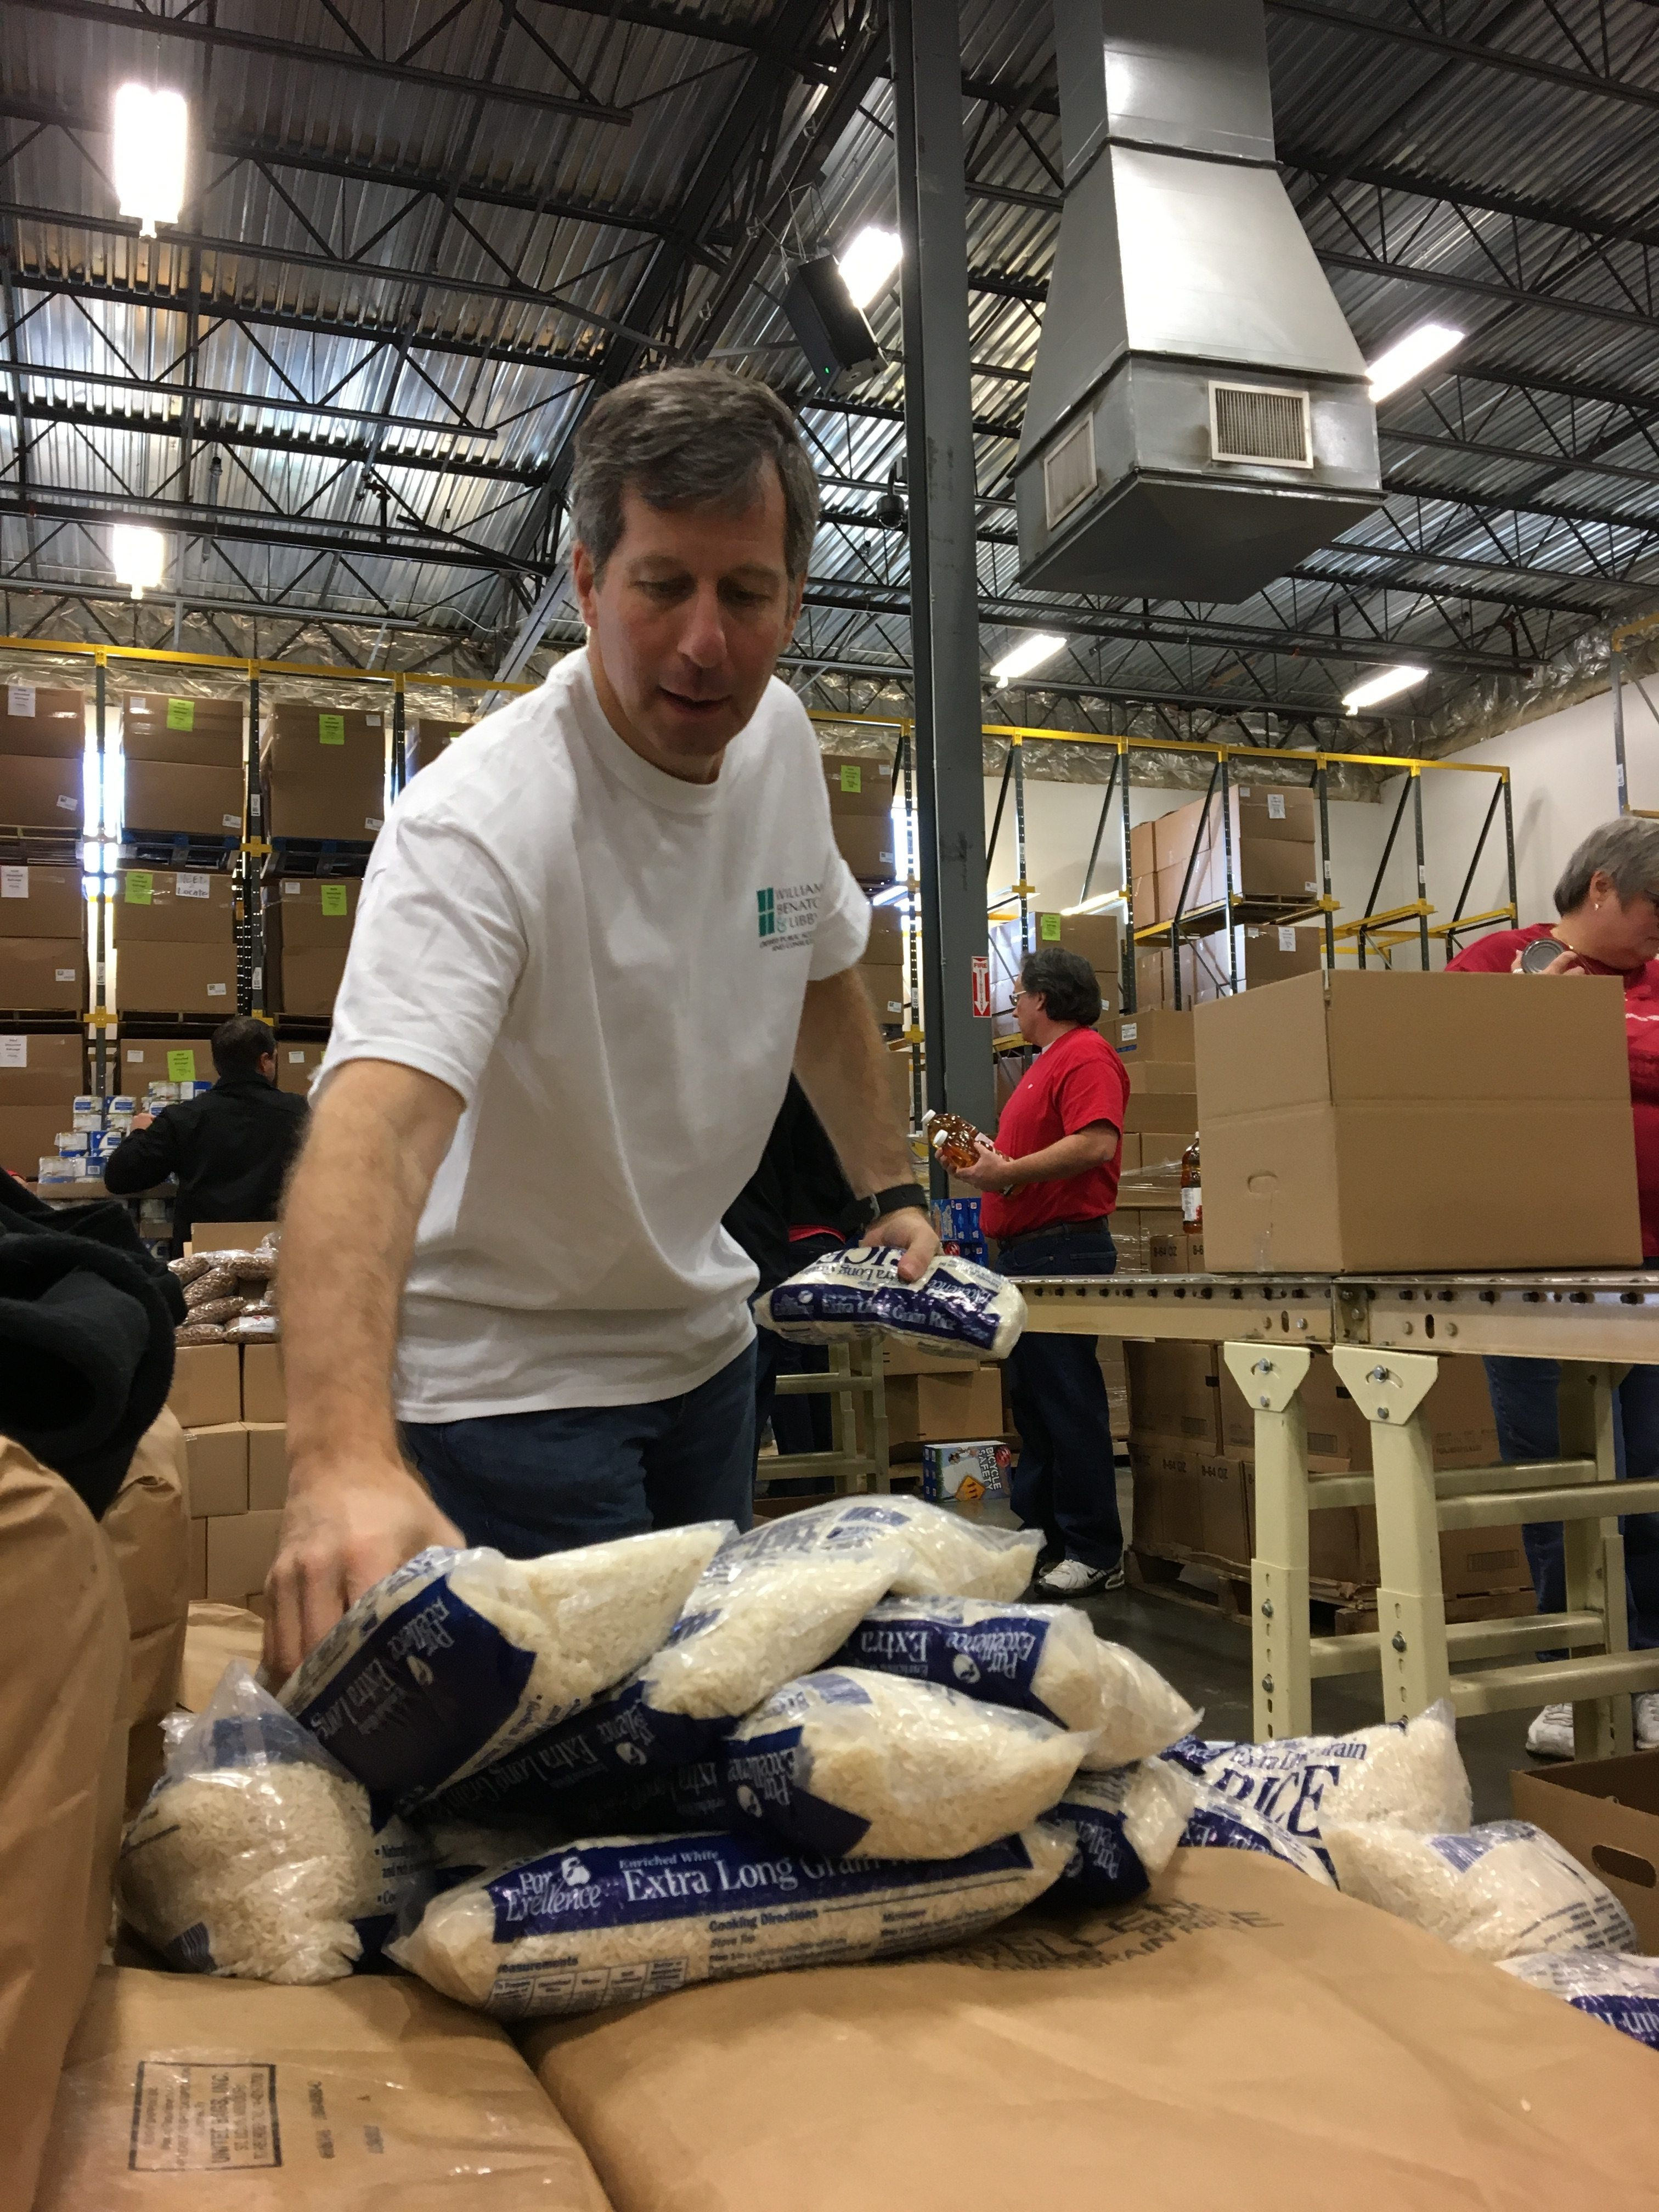 Bruce packs staples into boxes that will be delivered to Food Bank clients (ACFB 2016).